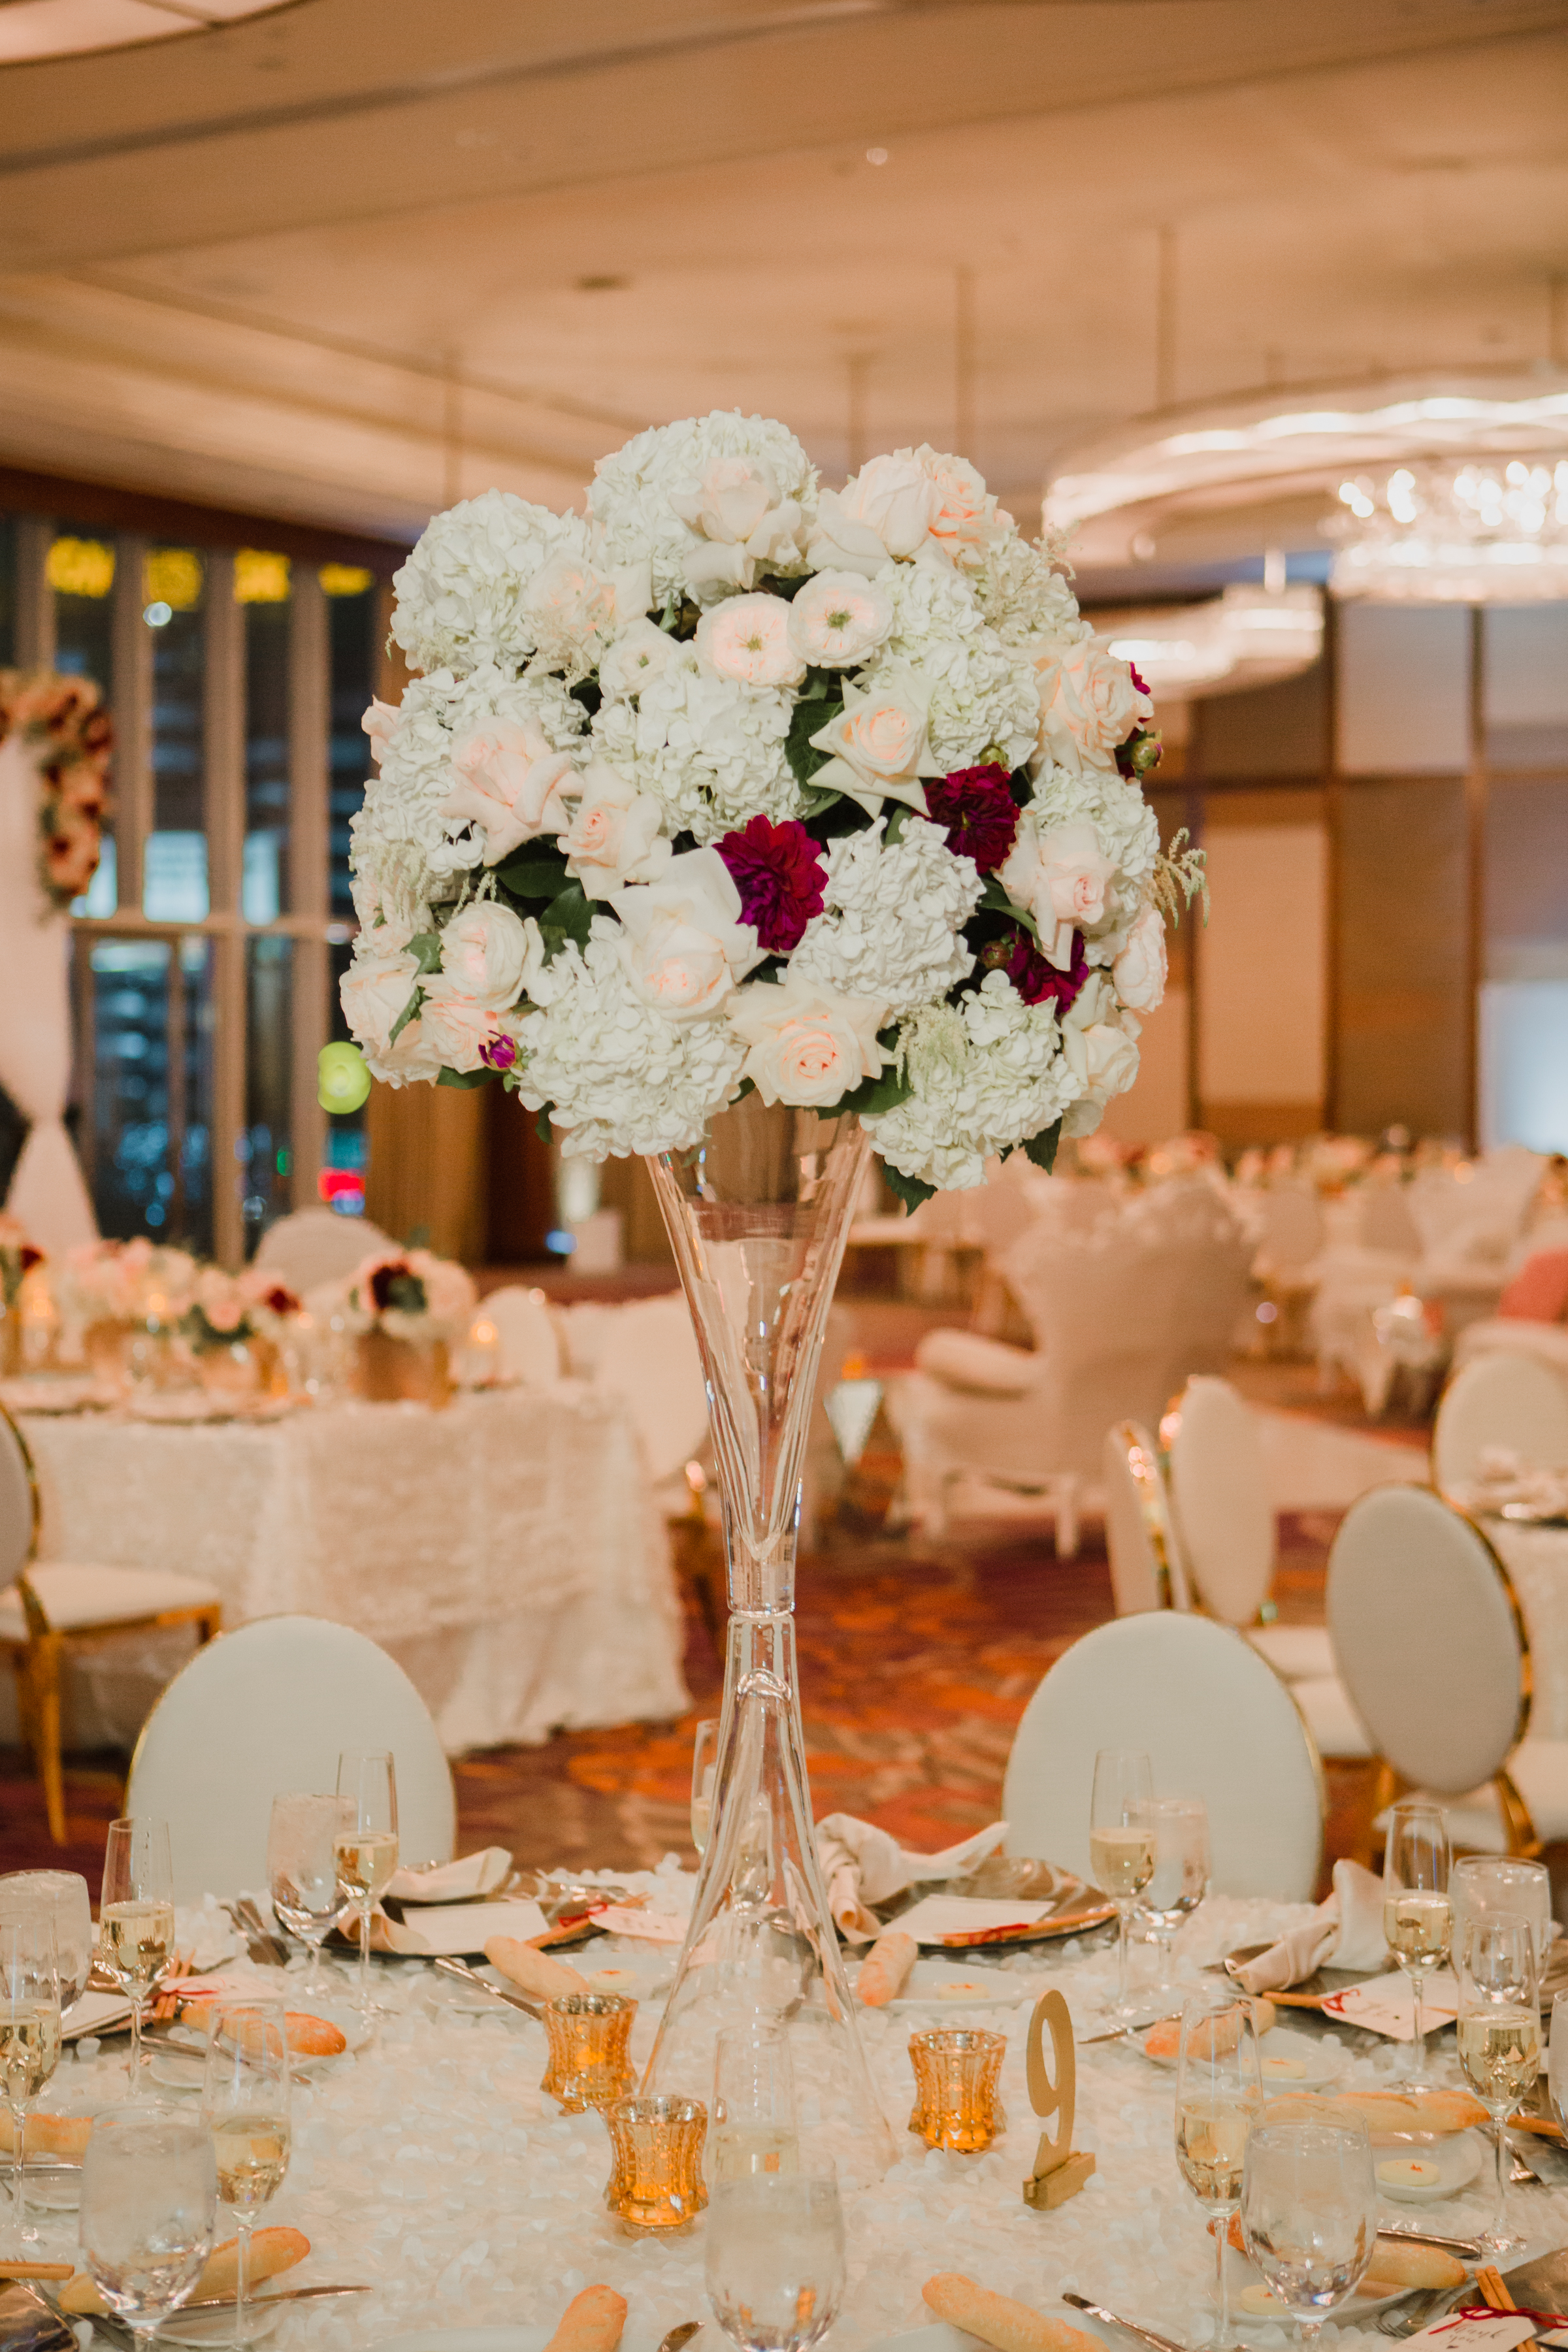 White hydrangea with pink roses and red dahlias.Luxury wedding at the Mandarin Oriental with a color scheme of white, blush, and pops of wine red produced by Las Vegas Wedding Planner Andrea Eppolito with photos by Stephen Salazar Photography.